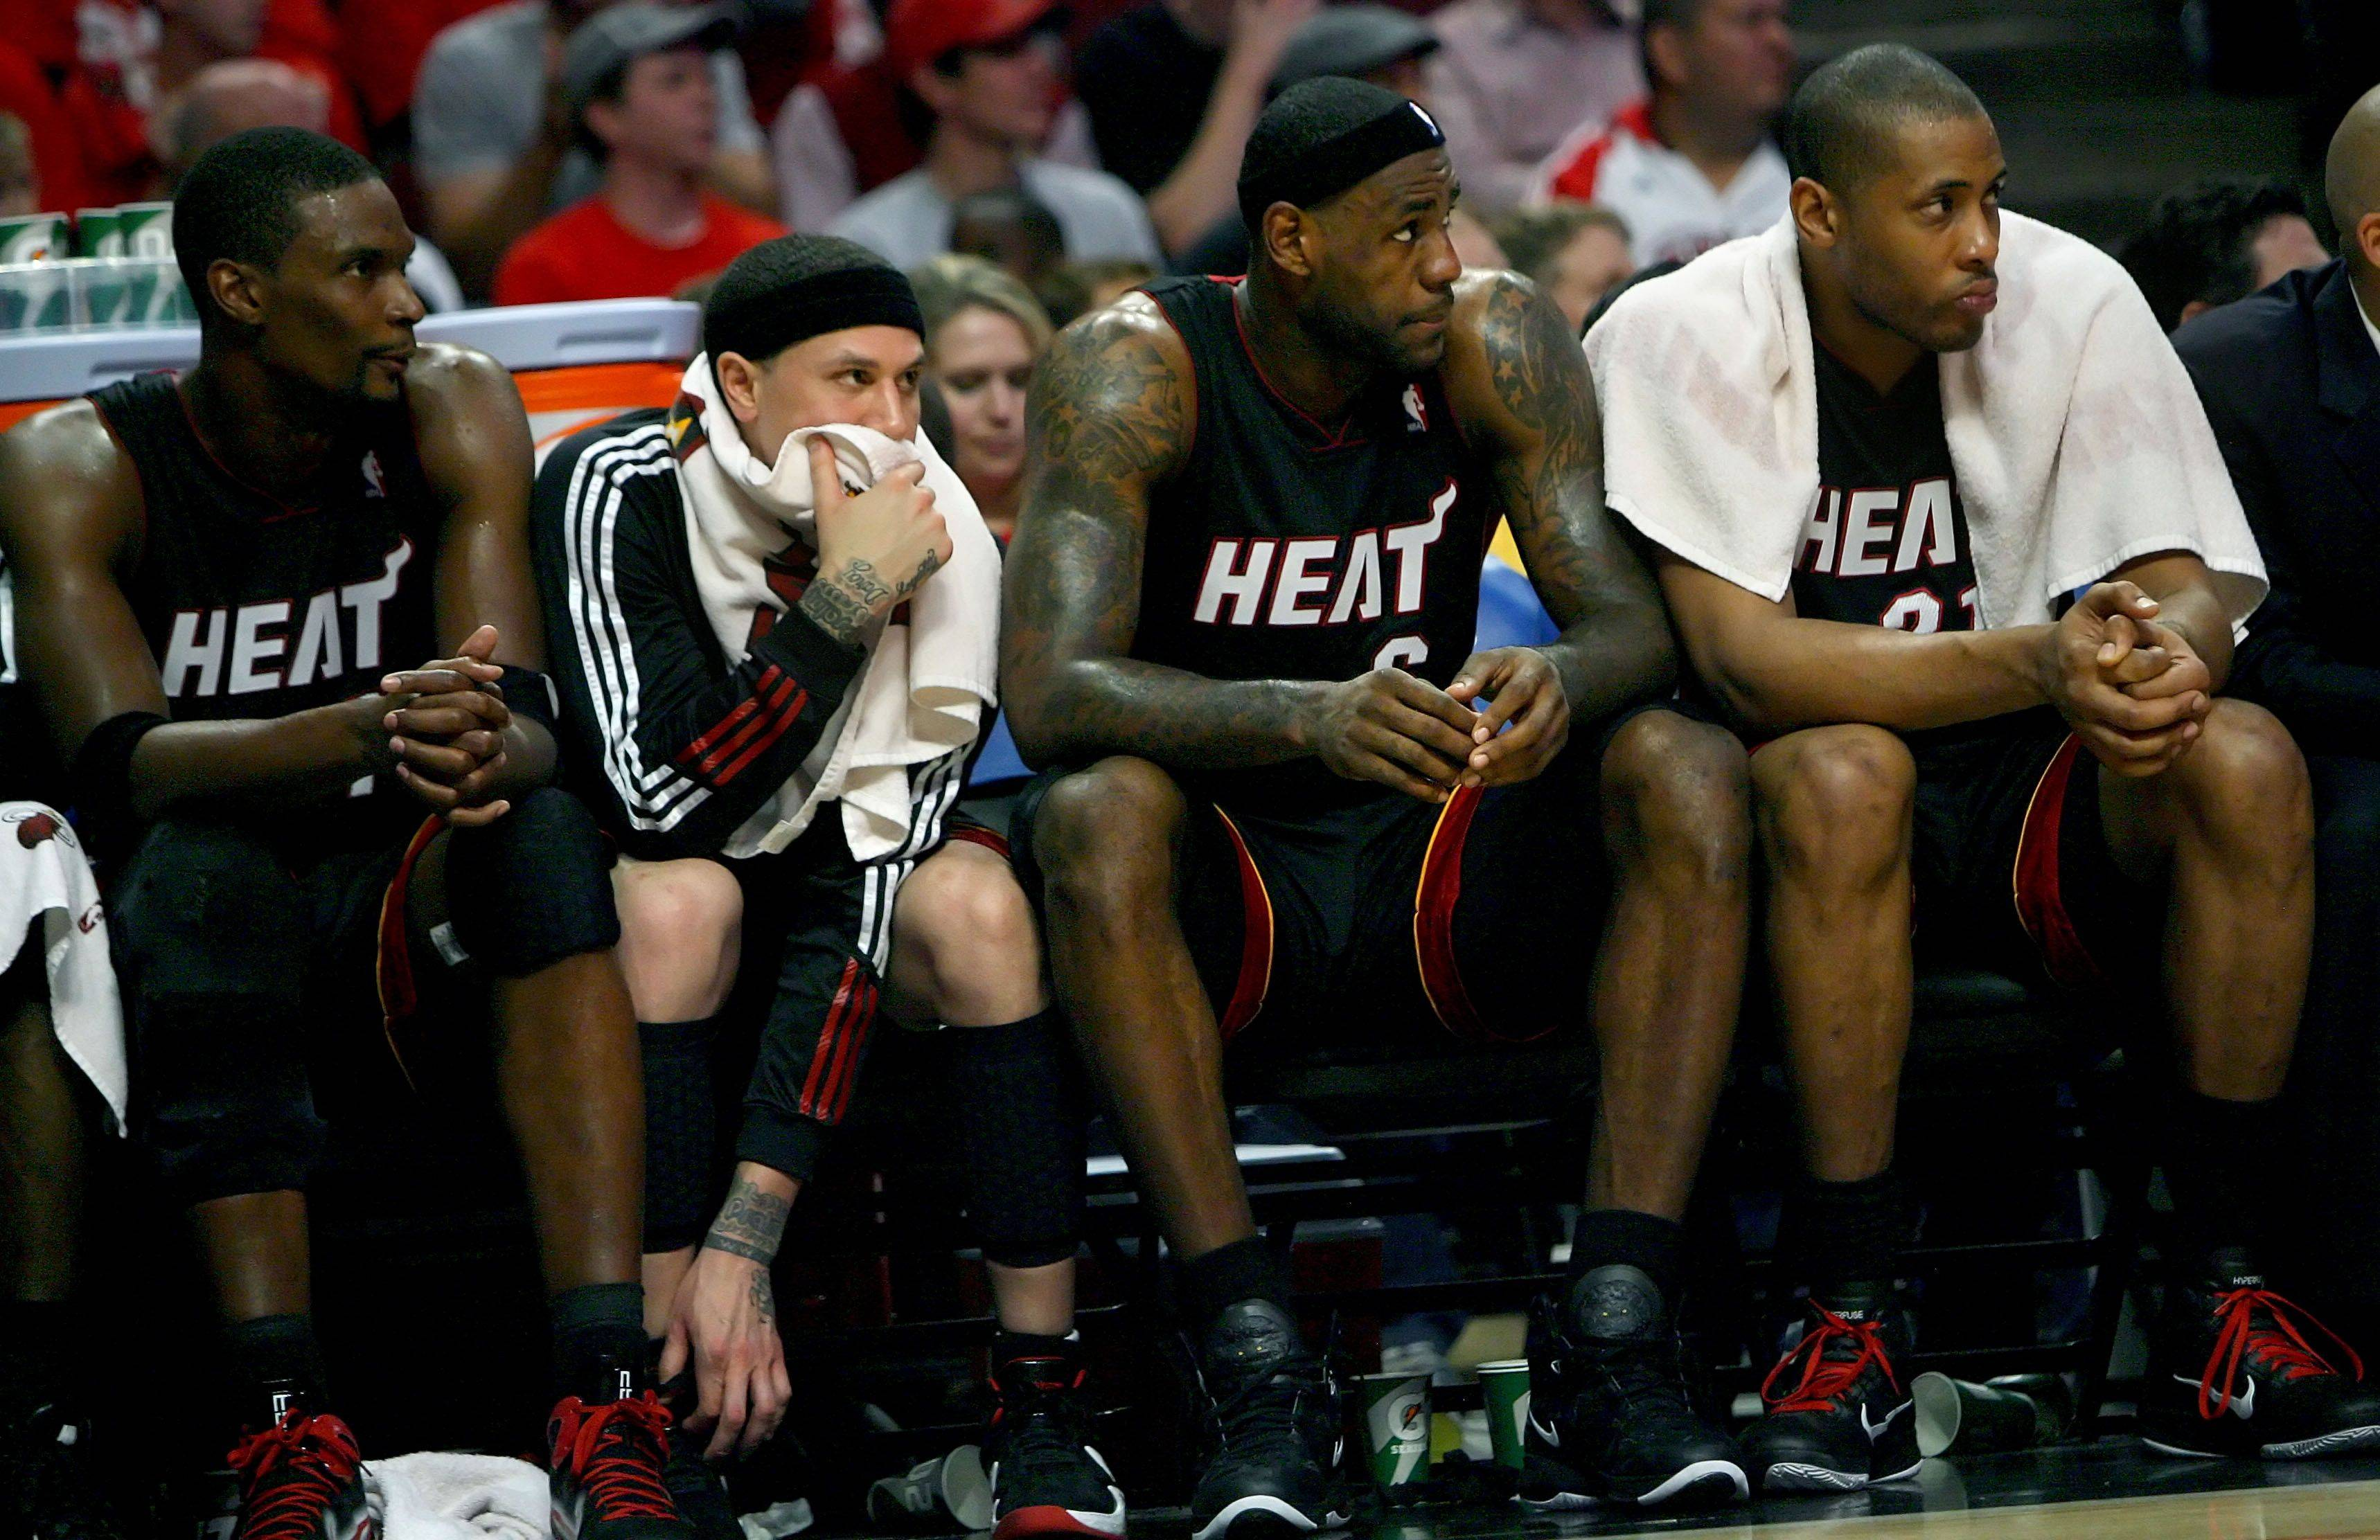 The heat bench can only watch as they lose 103-82 during game one of the Eastern Conference finals.